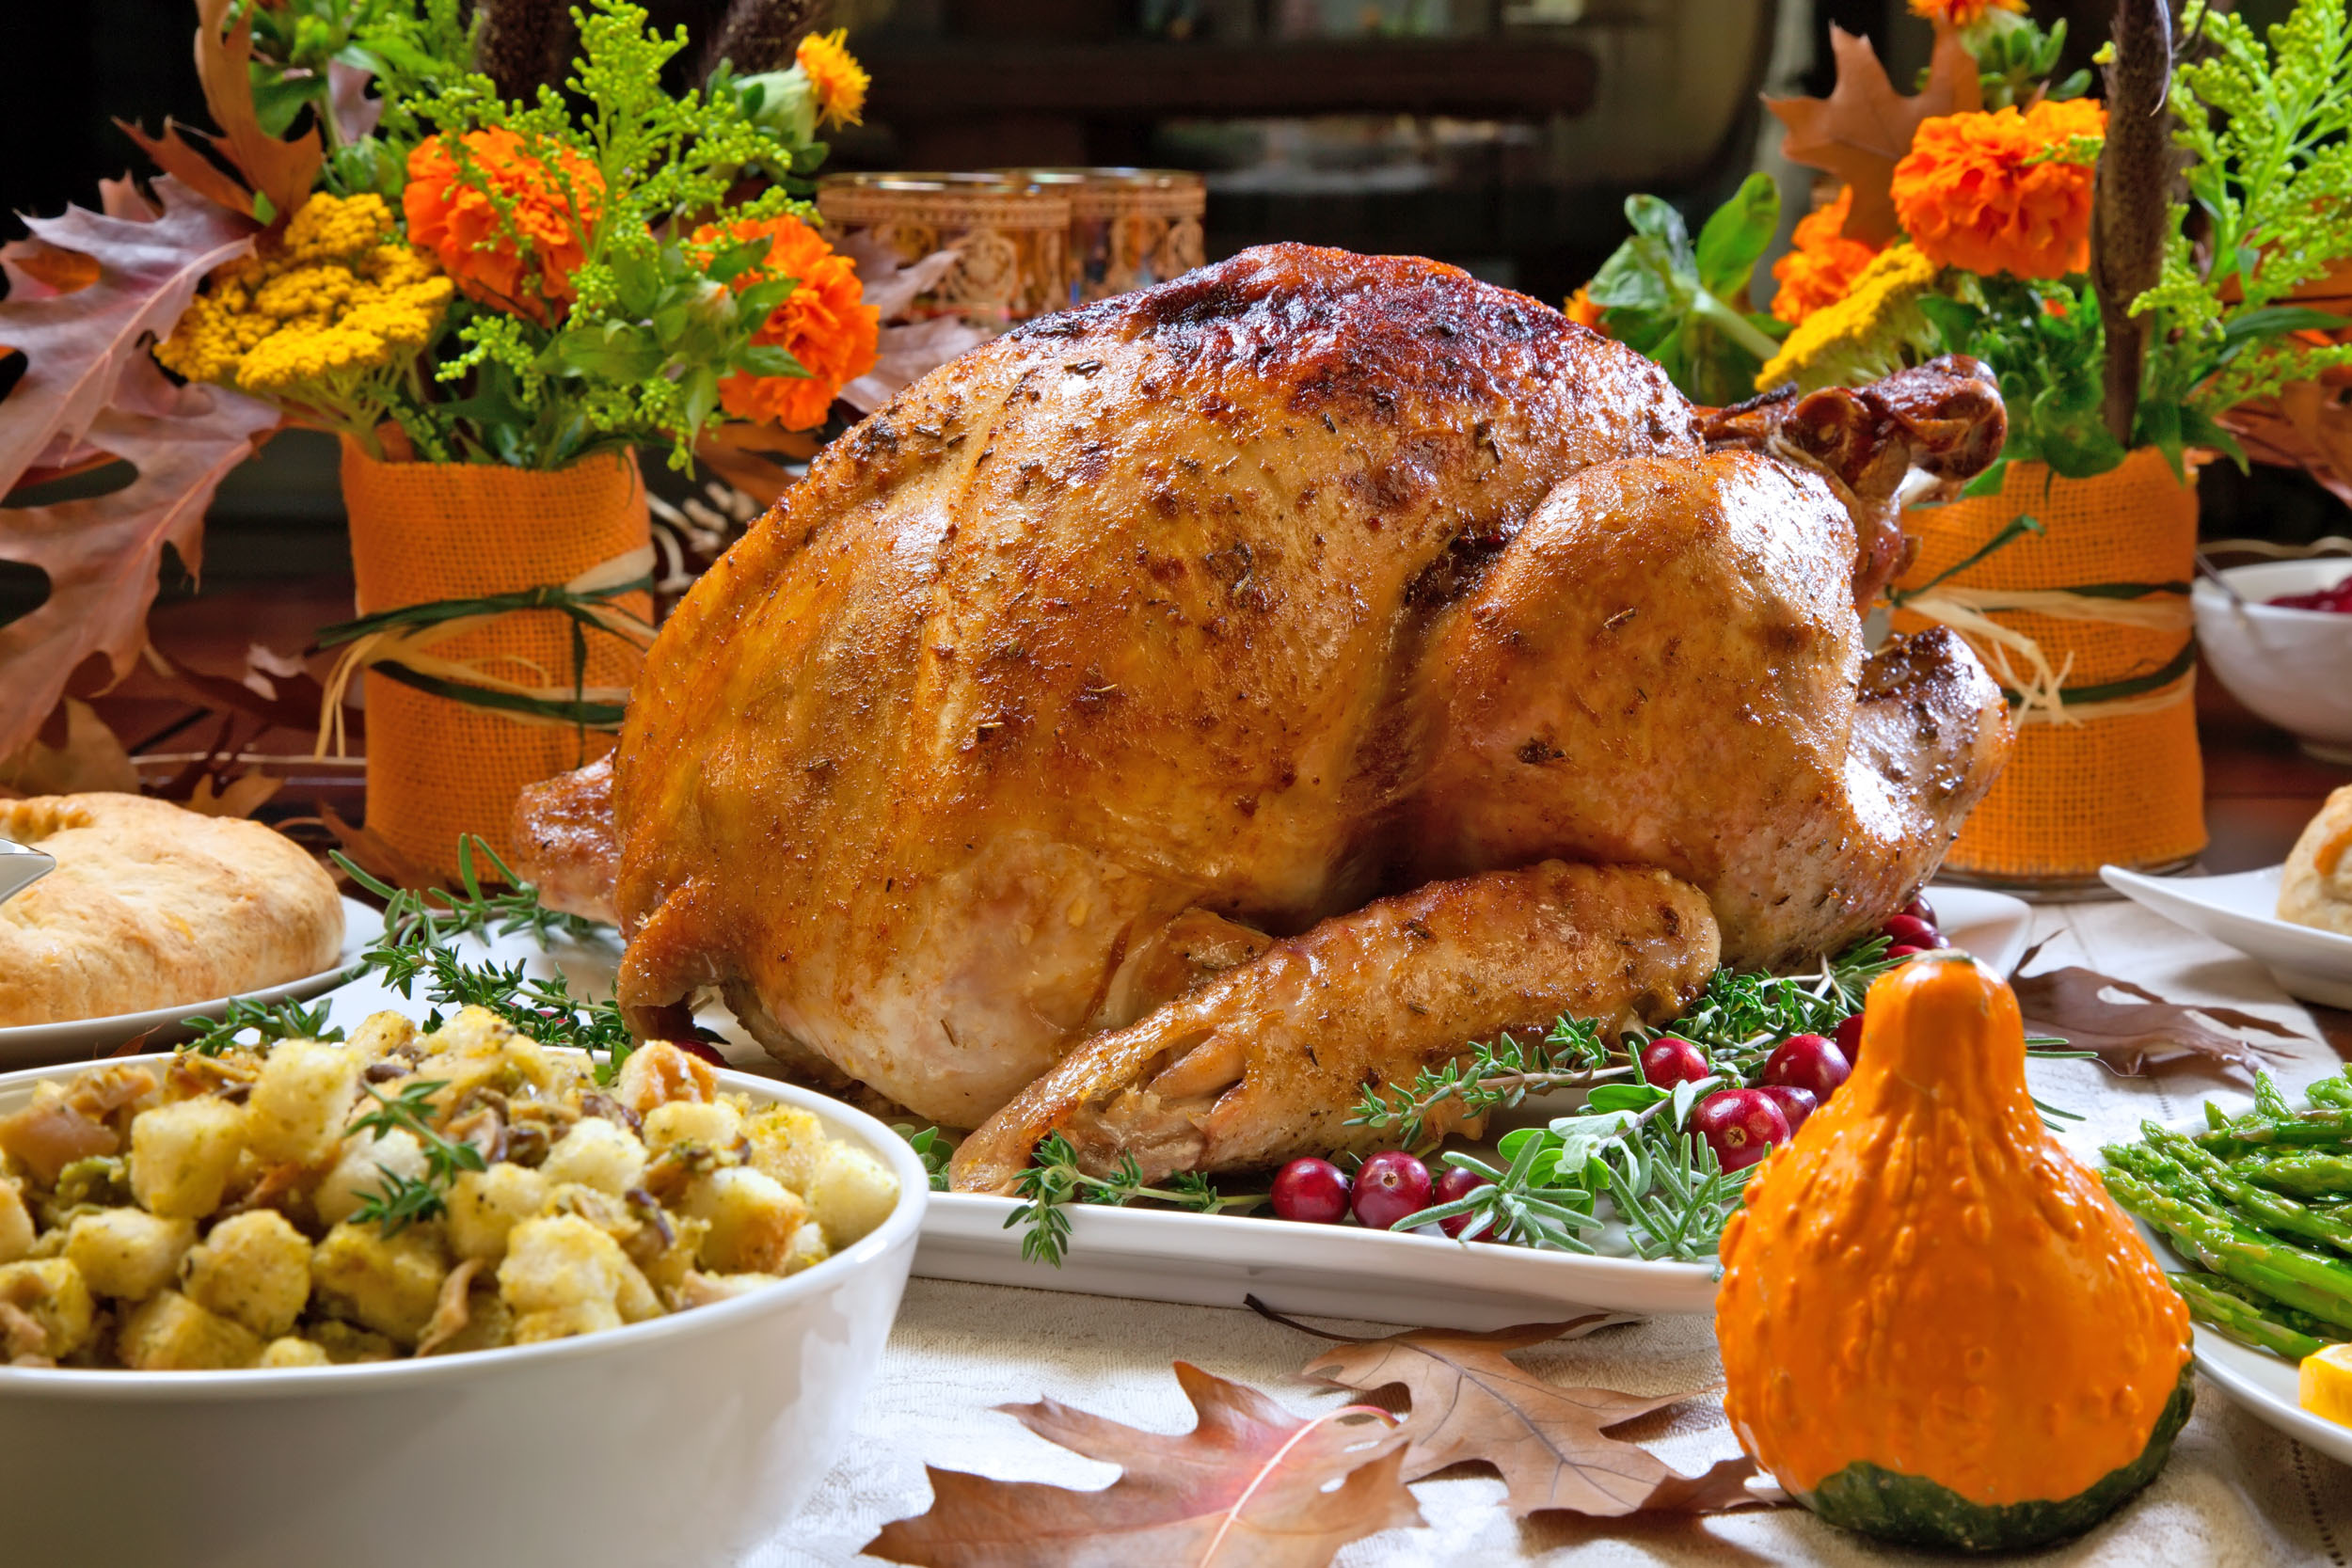 The lowest Thanksgiving dinner carbon footprint was in Vermont, where the average feast produced only 0.2 pounds of carbon dioxide. In second and third place were Washington state, with 8.1 pounds of CO2, and Idaho, with 9.2.